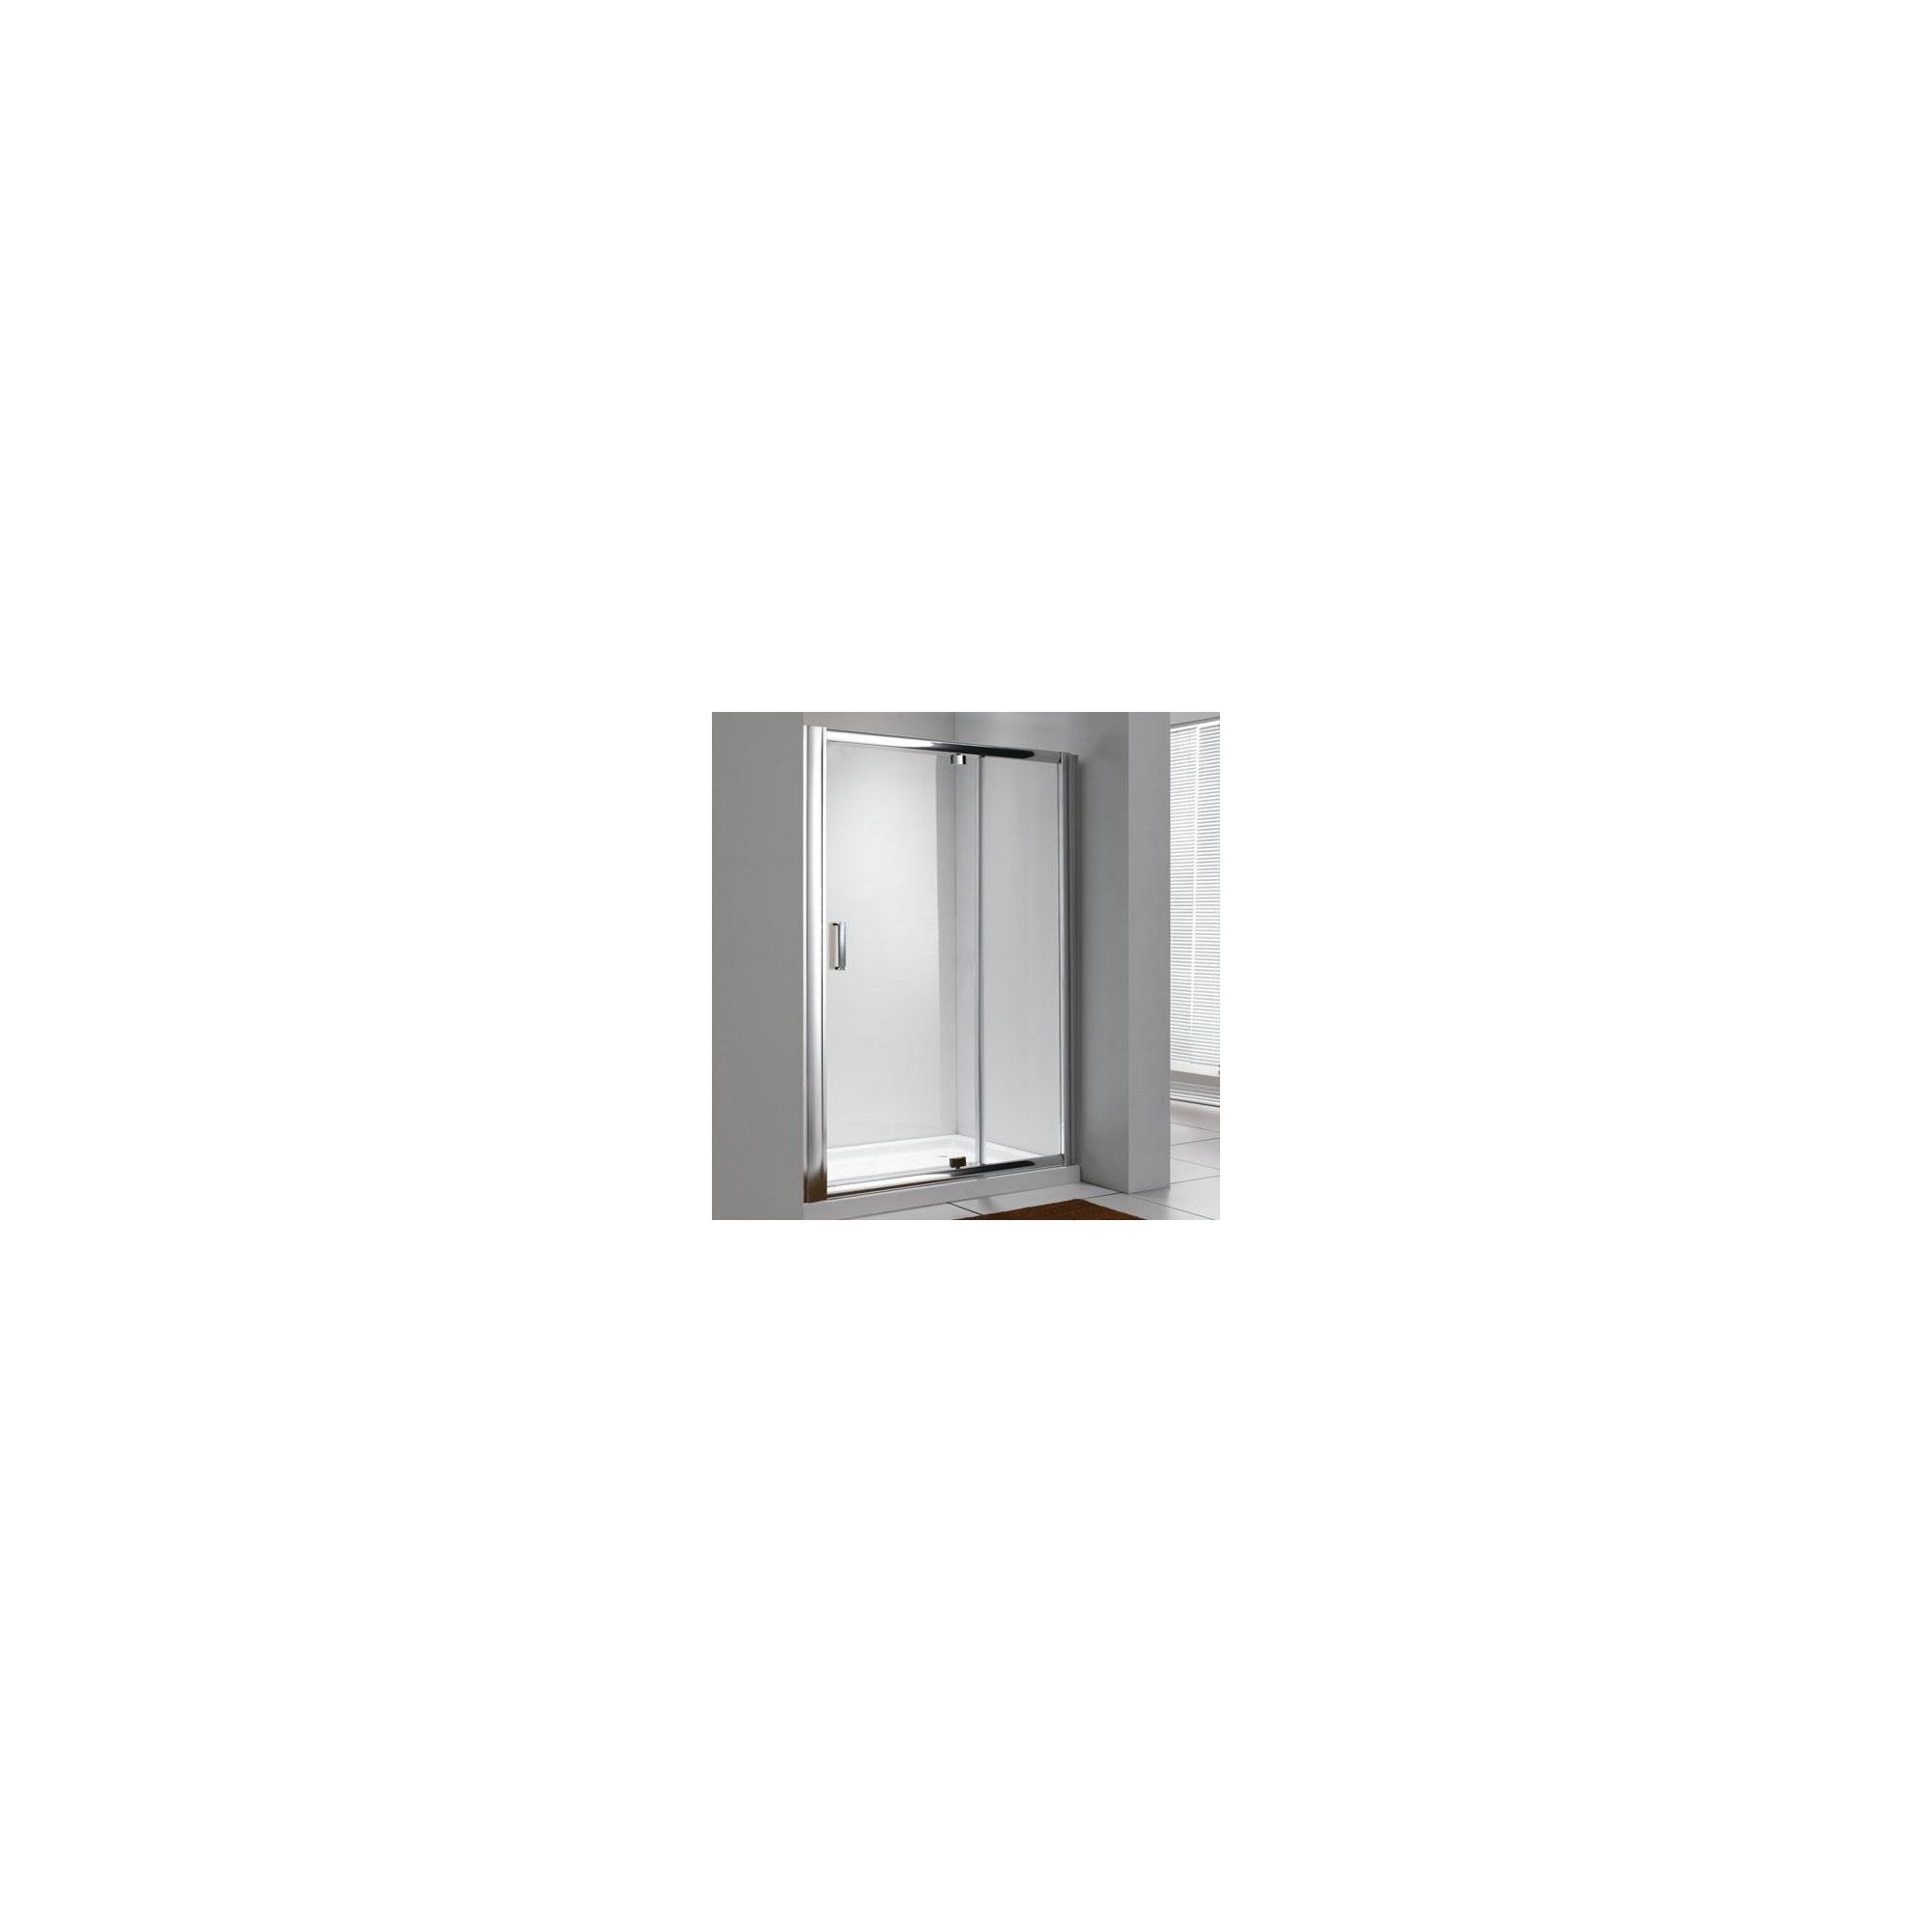 Duchy Style Pivot Door Shower Enclosure, 1000mm x 900mm, 6mm Glass, Low Profile Tray at Tesco Direct